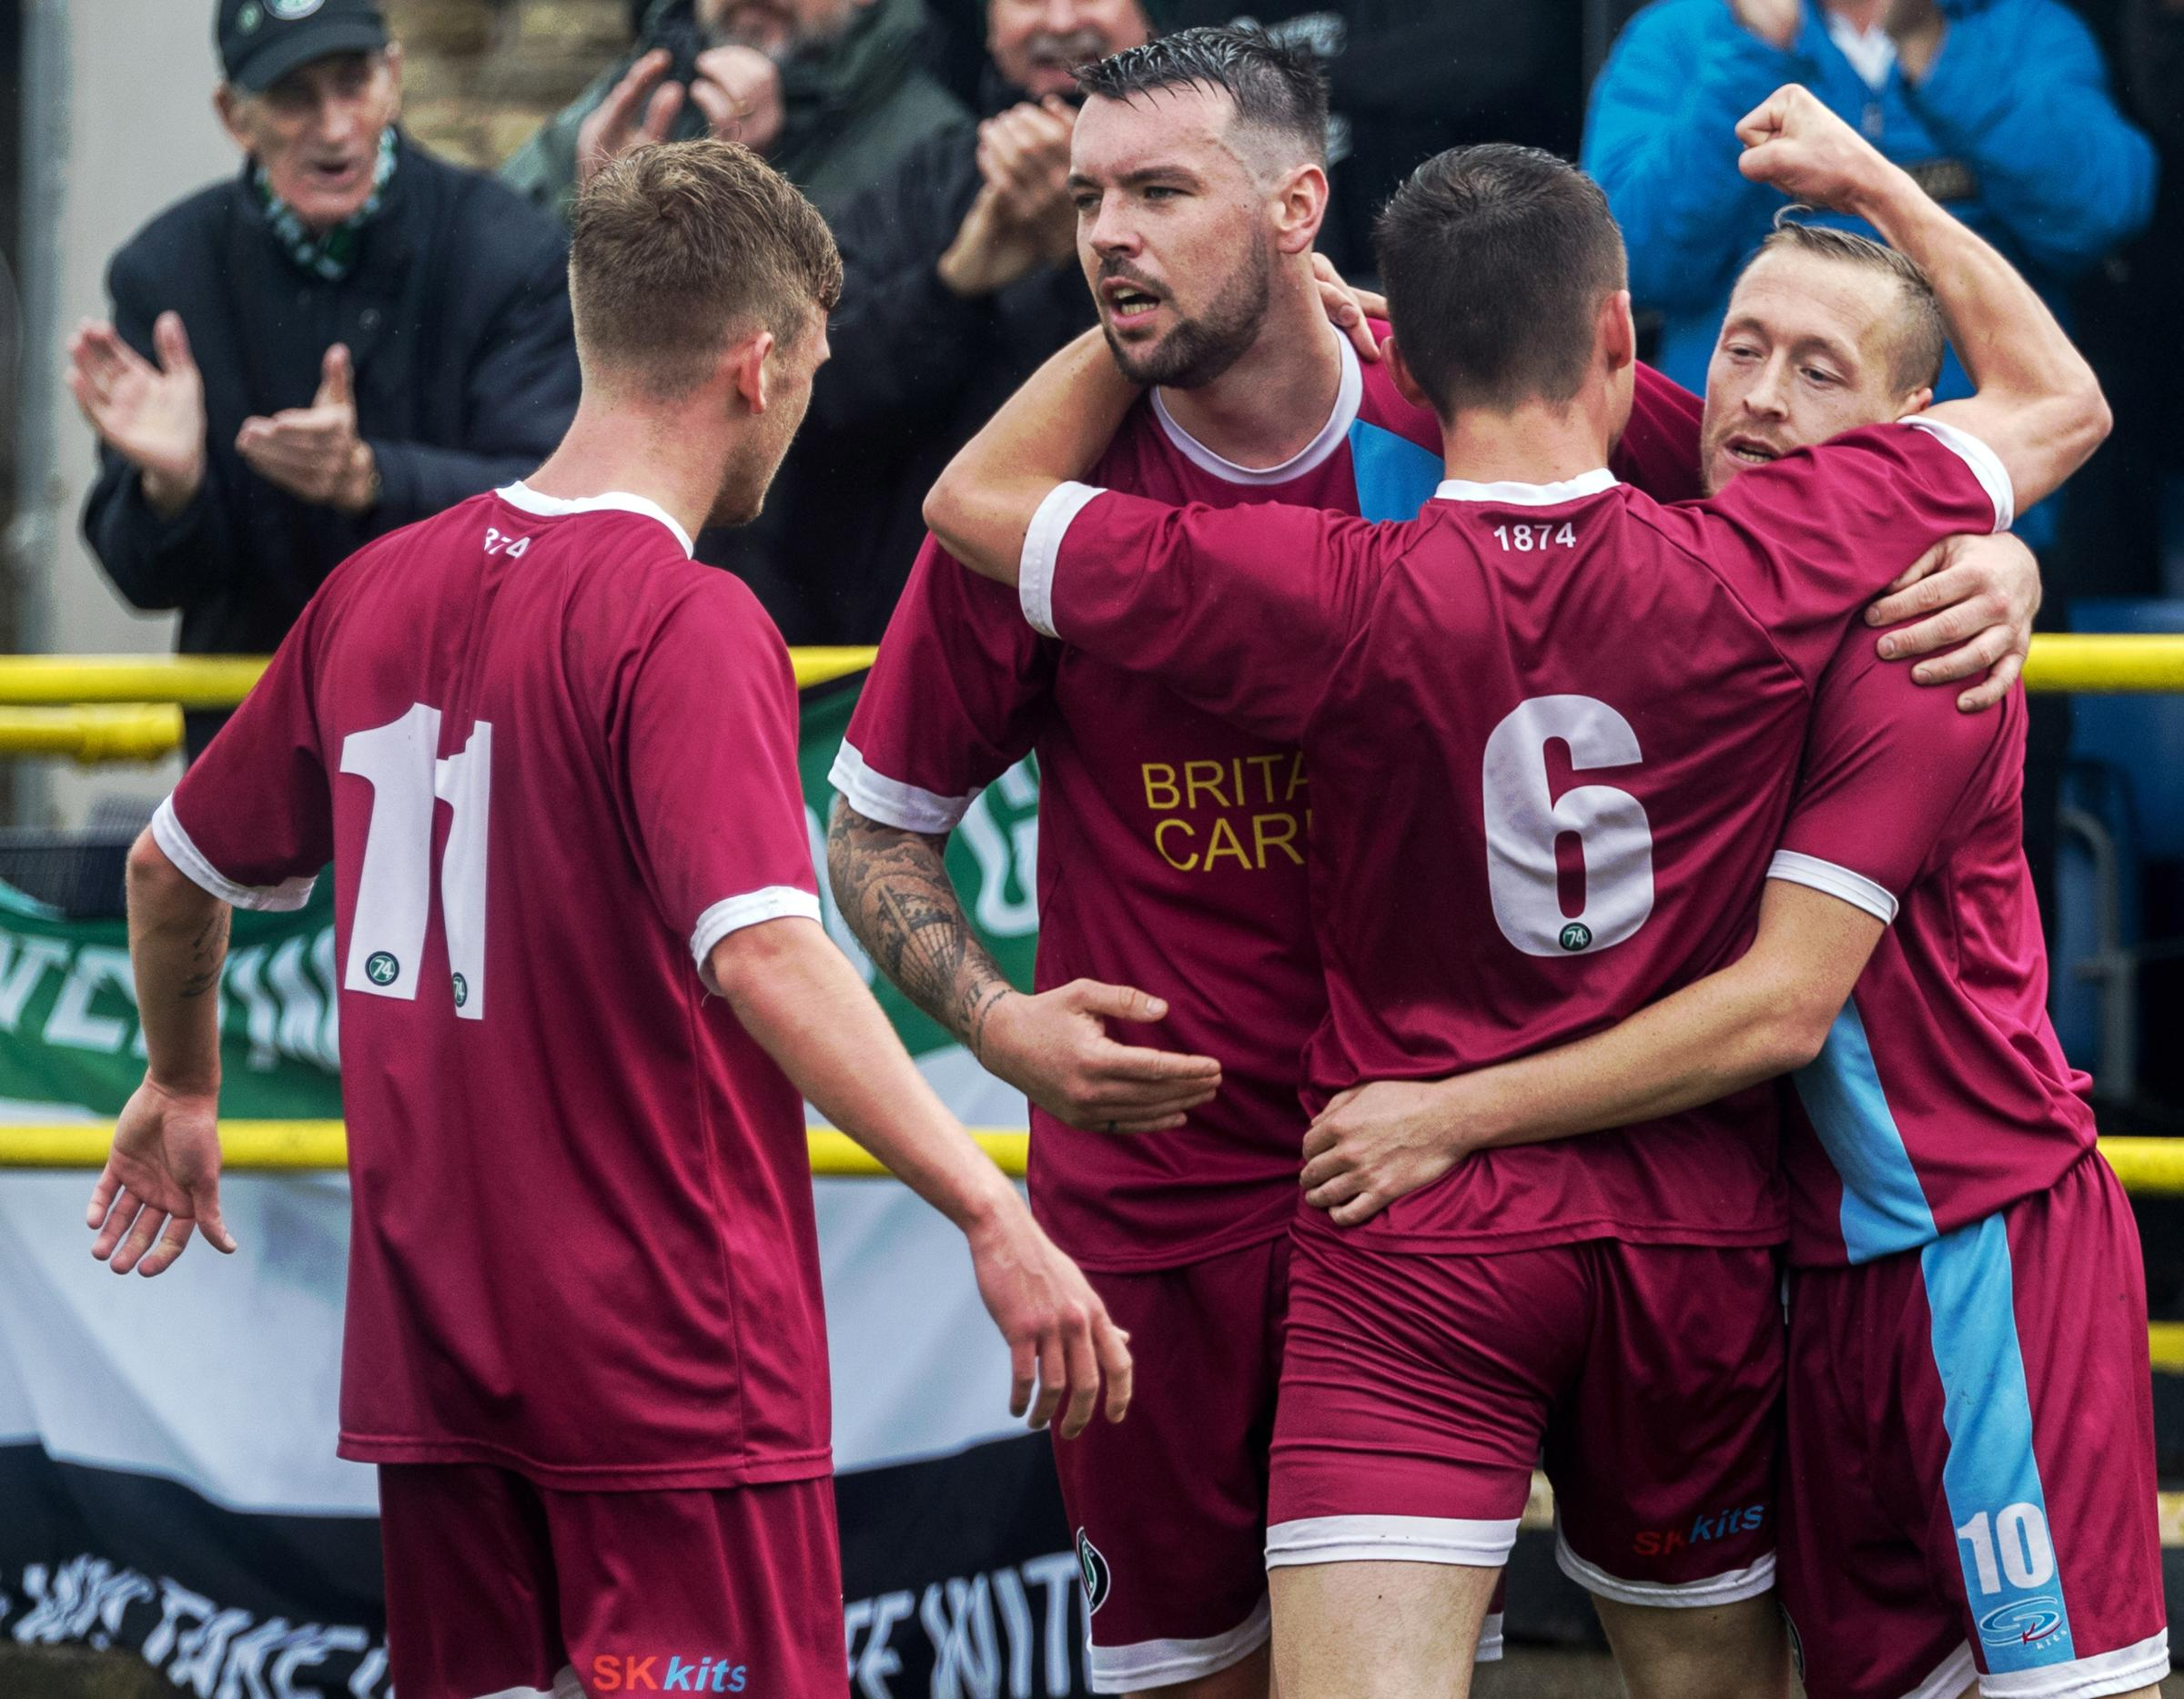 Scott McGowan, right, takes the acclaim of his 1874 Northwich teammates after scoring during their draw with Ashton Athletic on Saturday. Picture: Ian Dutton